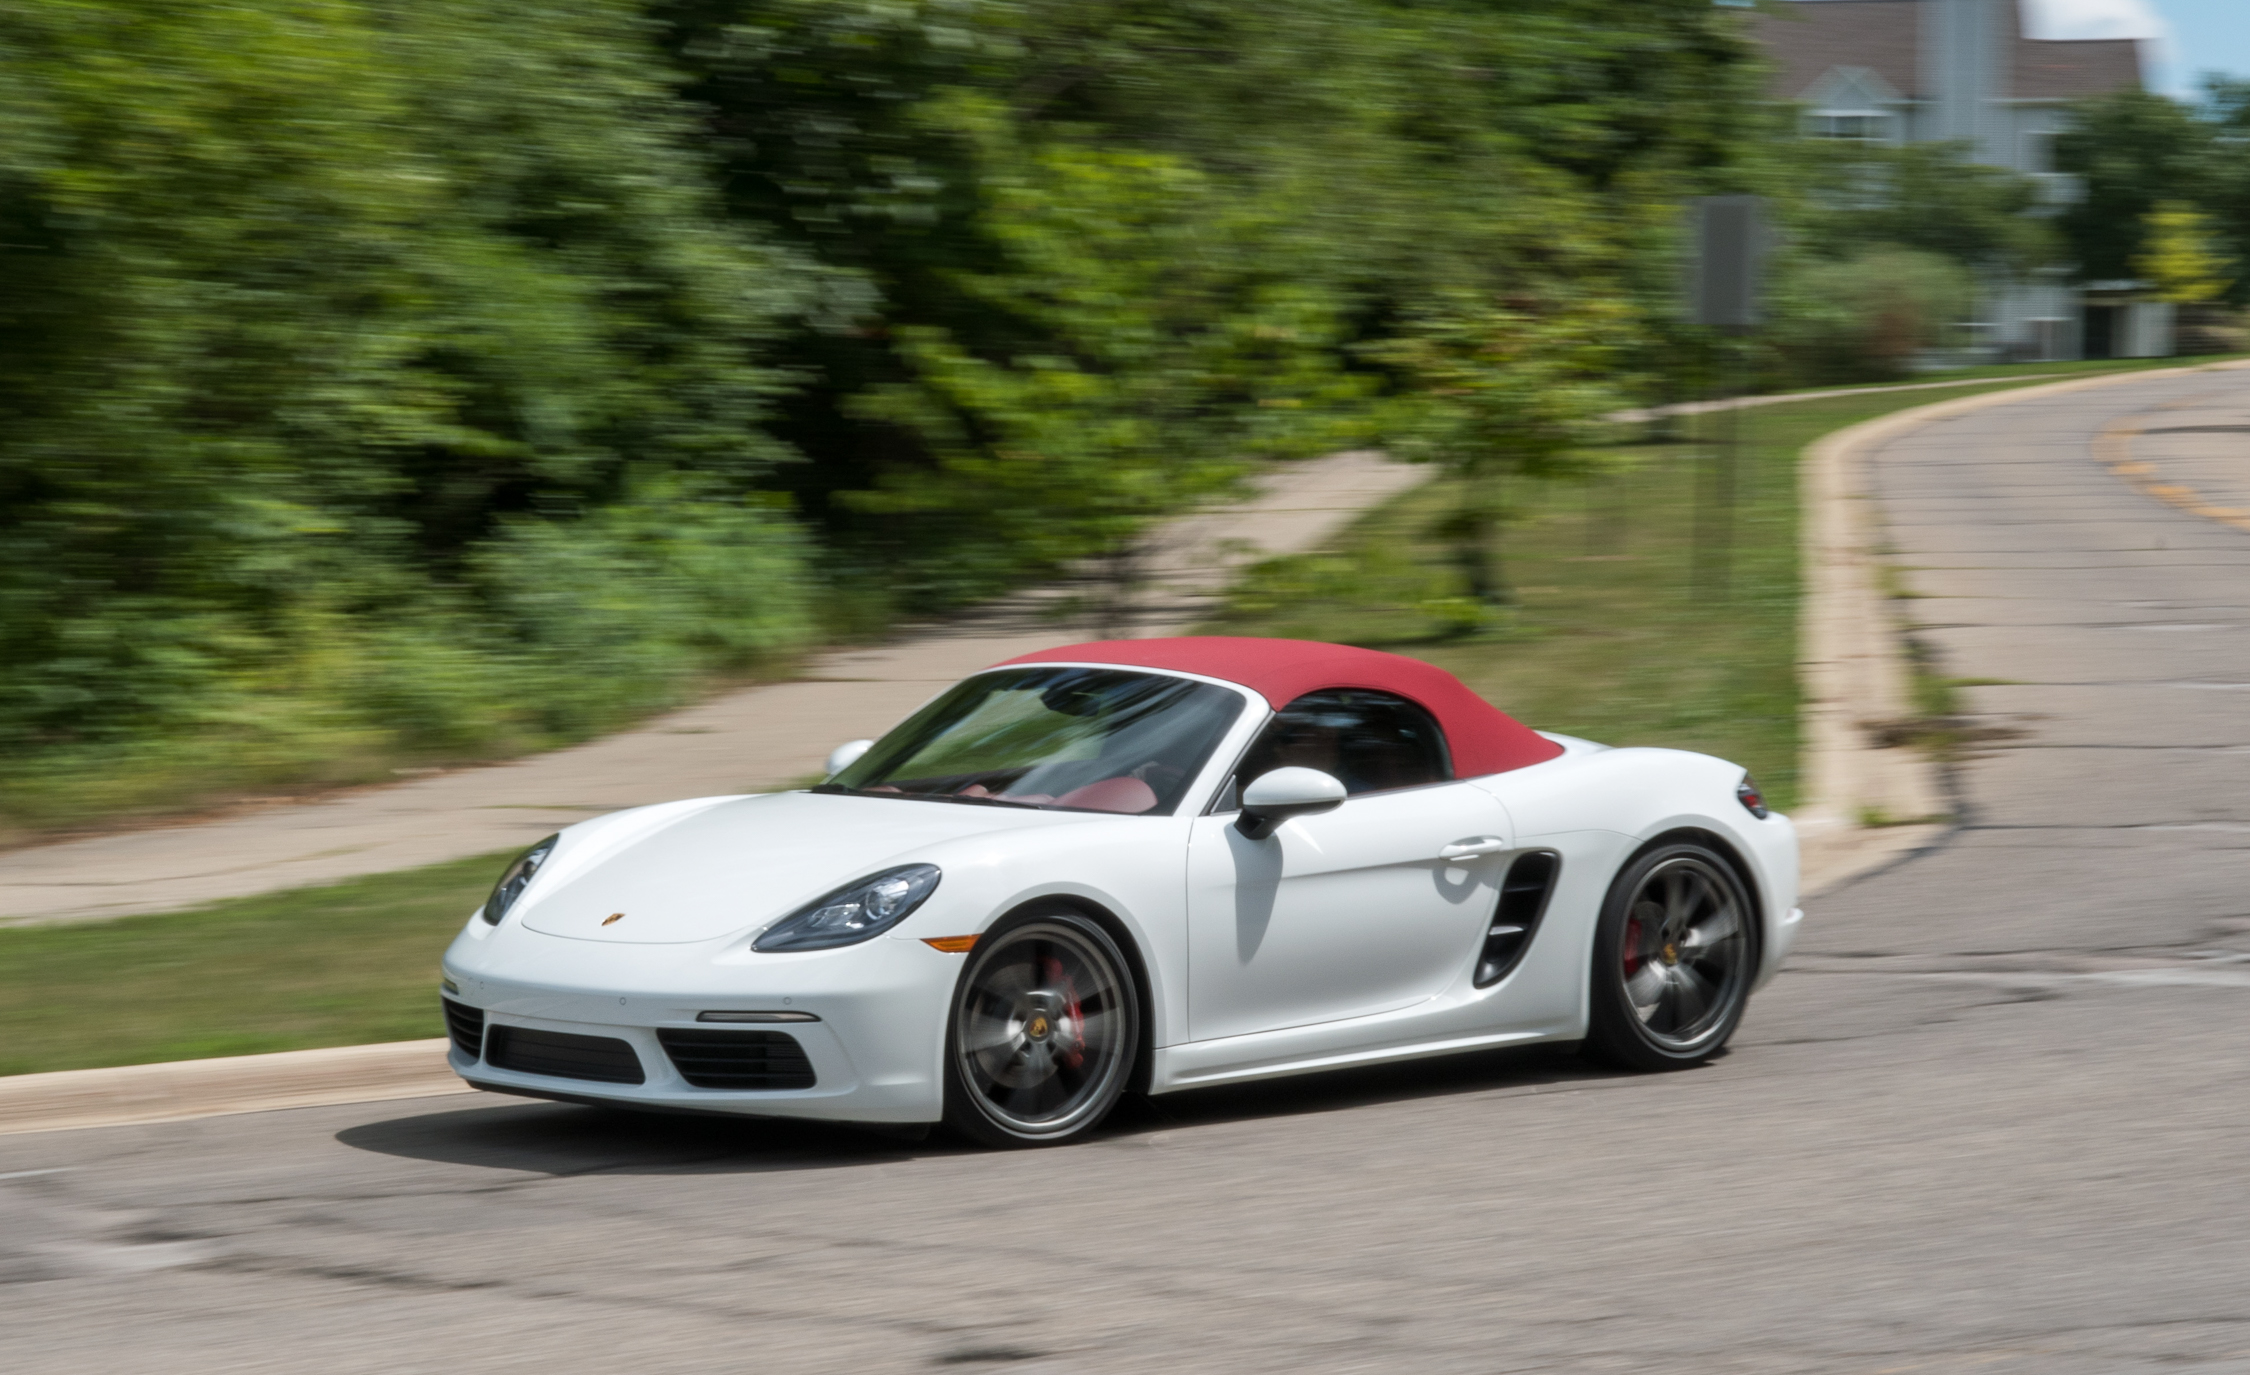 2017 Porsche 718 Boxster (View 70 of 71)